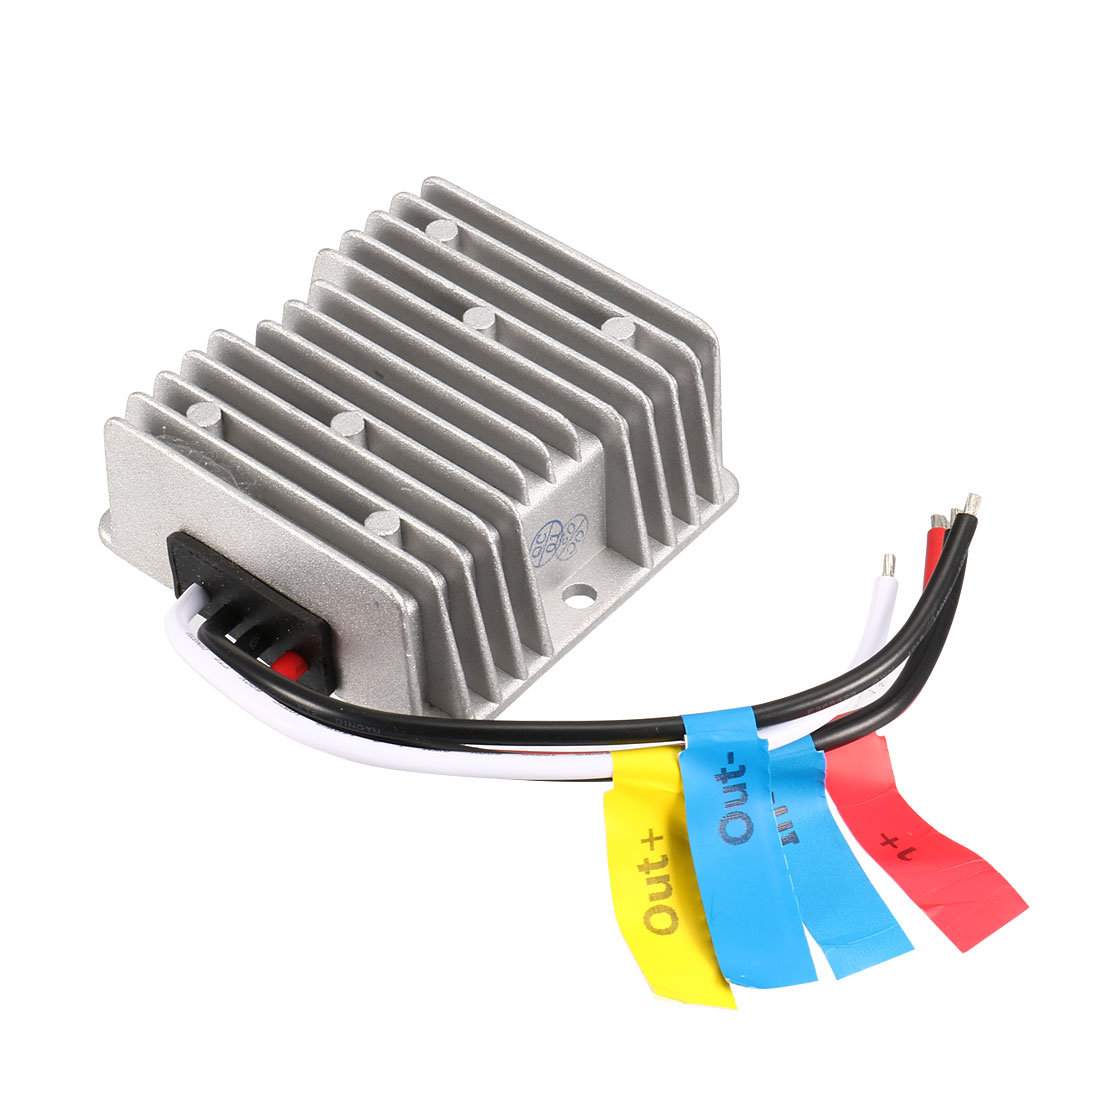 DC 12V to DC24V 12A 288W Power Supply Converter Regulator Transformer